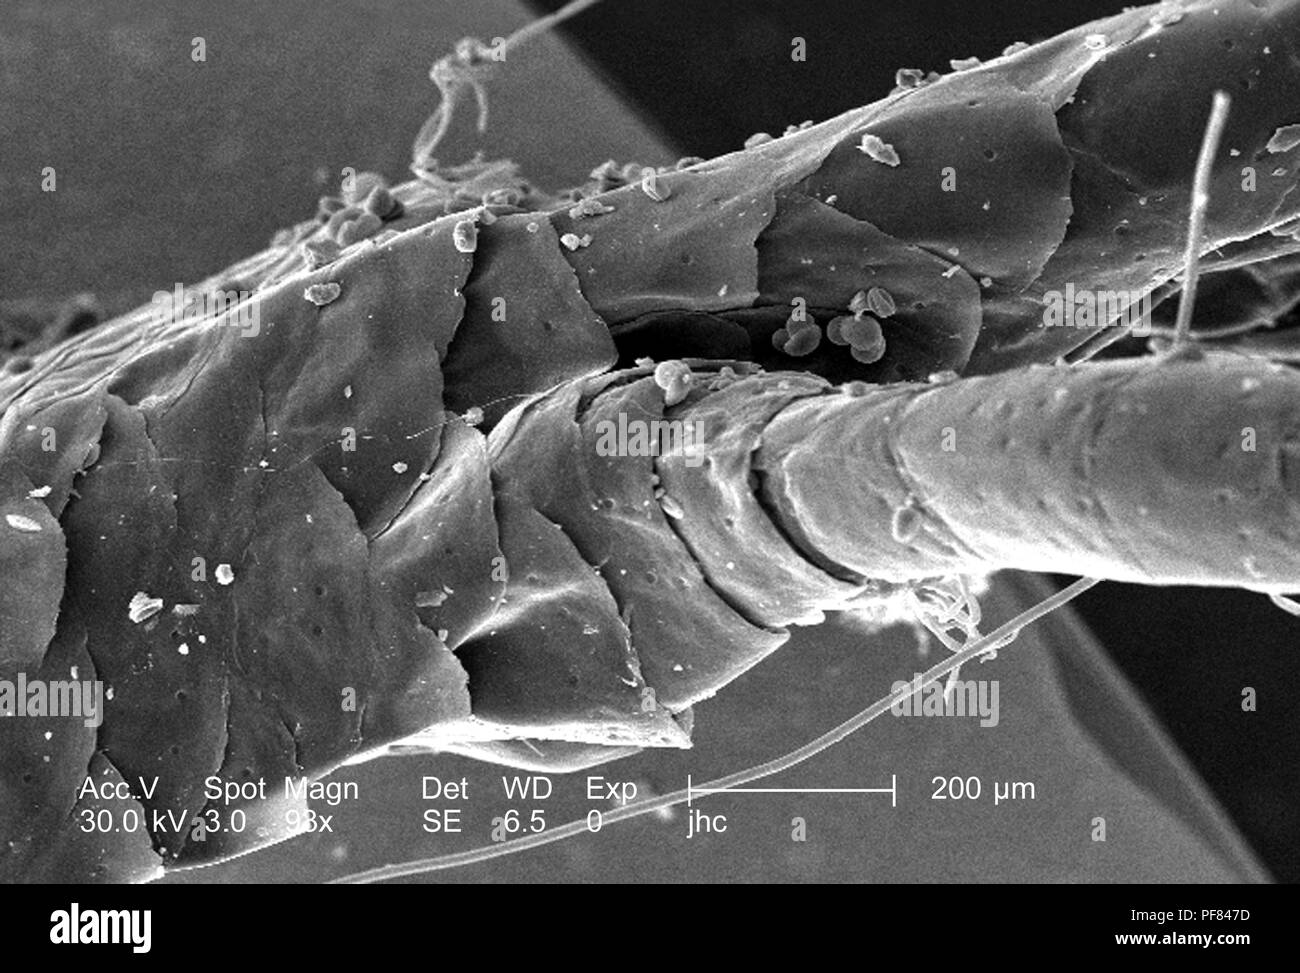 Morphologic features of a deceased lizard's foot found in Decatur, Georgia, revealed in the 98x magnified scanning electron microscopic (SEM) image, 2006. Image courtesy Centers for Disease Control (CDC) / William L. Nicholson, Ph.D. Cal Welbourn, Ph.D. Gary R. Mullen. () - Stock Image